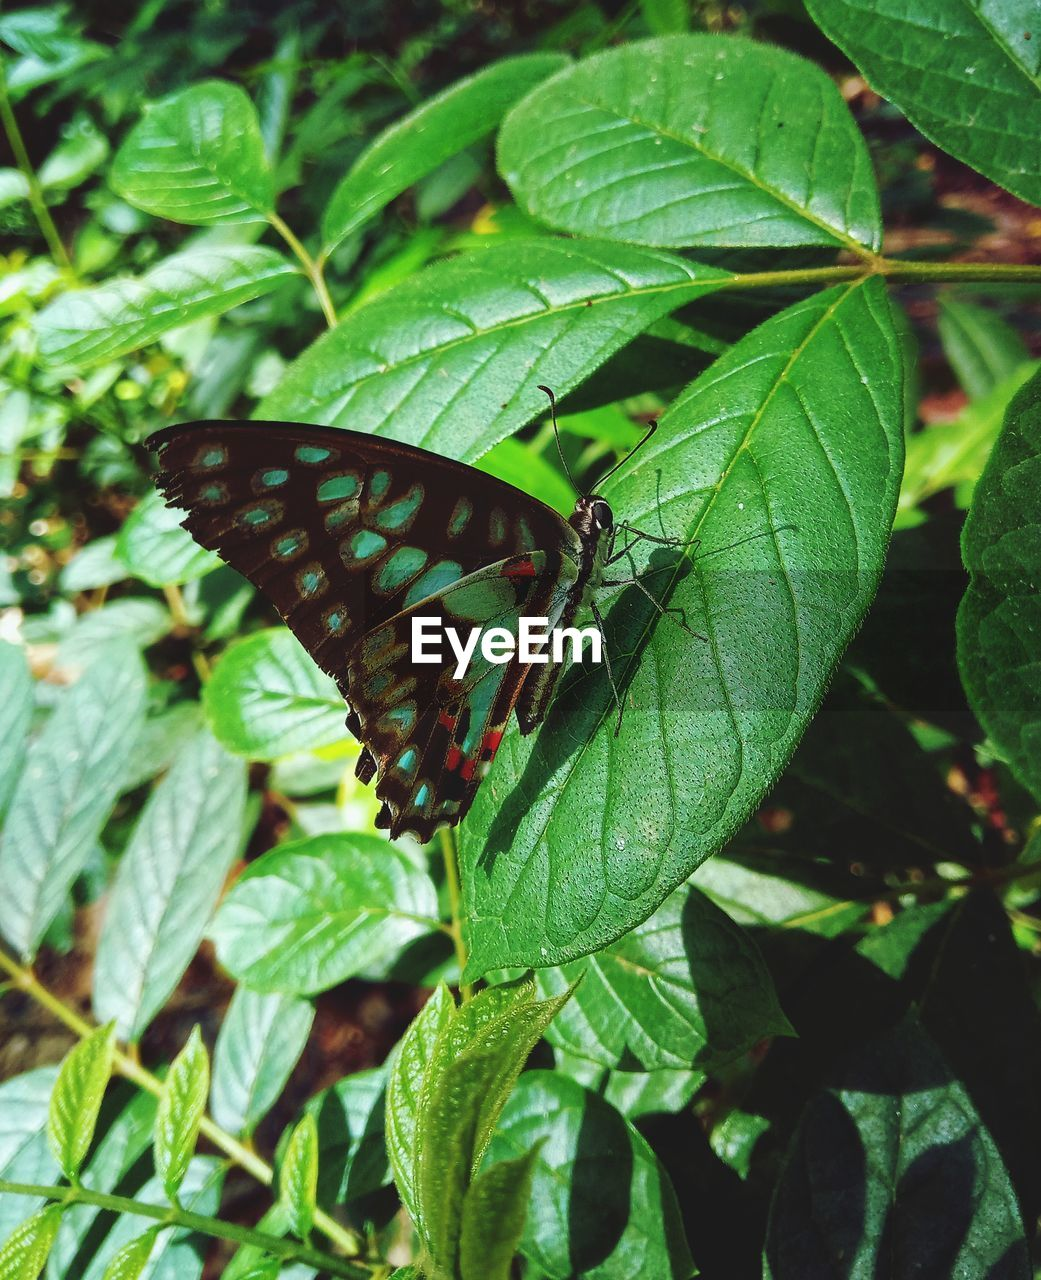 leaf, animal themes, invertebrate, plant part, animal wildlife, insect, animal, one animal, animals in the wild, plant, green color, animal wing, growth, nature, close-up, day, no people, beauty in nature, butterfly - insect, focus on foreground, outdoors, butterfly